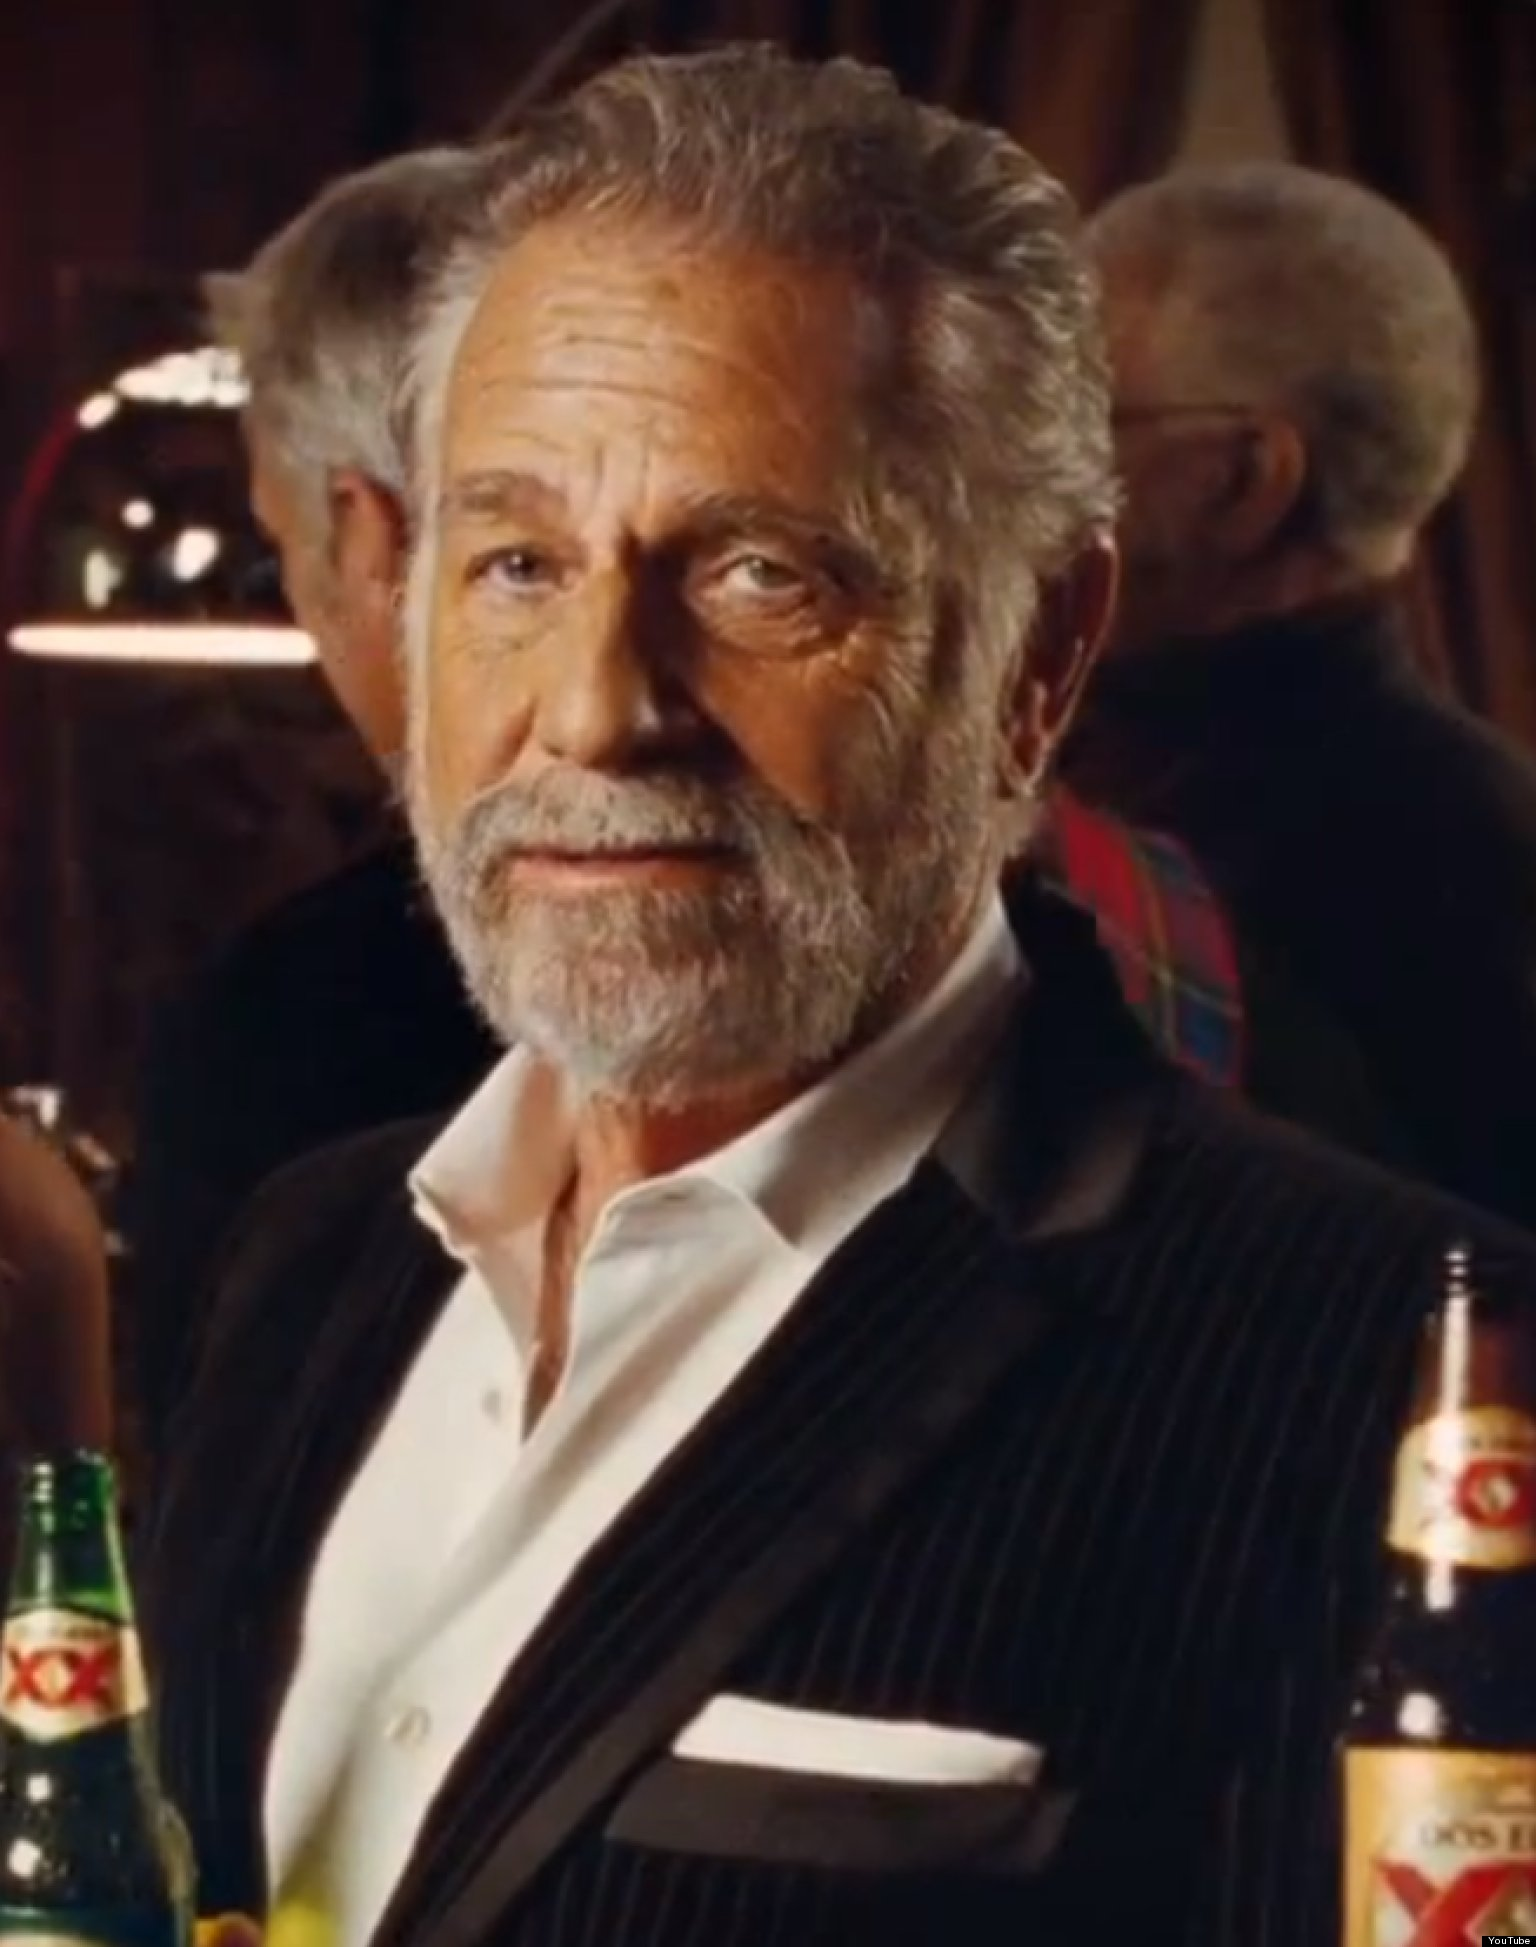 The Interesting Man In The World Quotes: 'The Most Interesting Man In The World,' Dos Equis